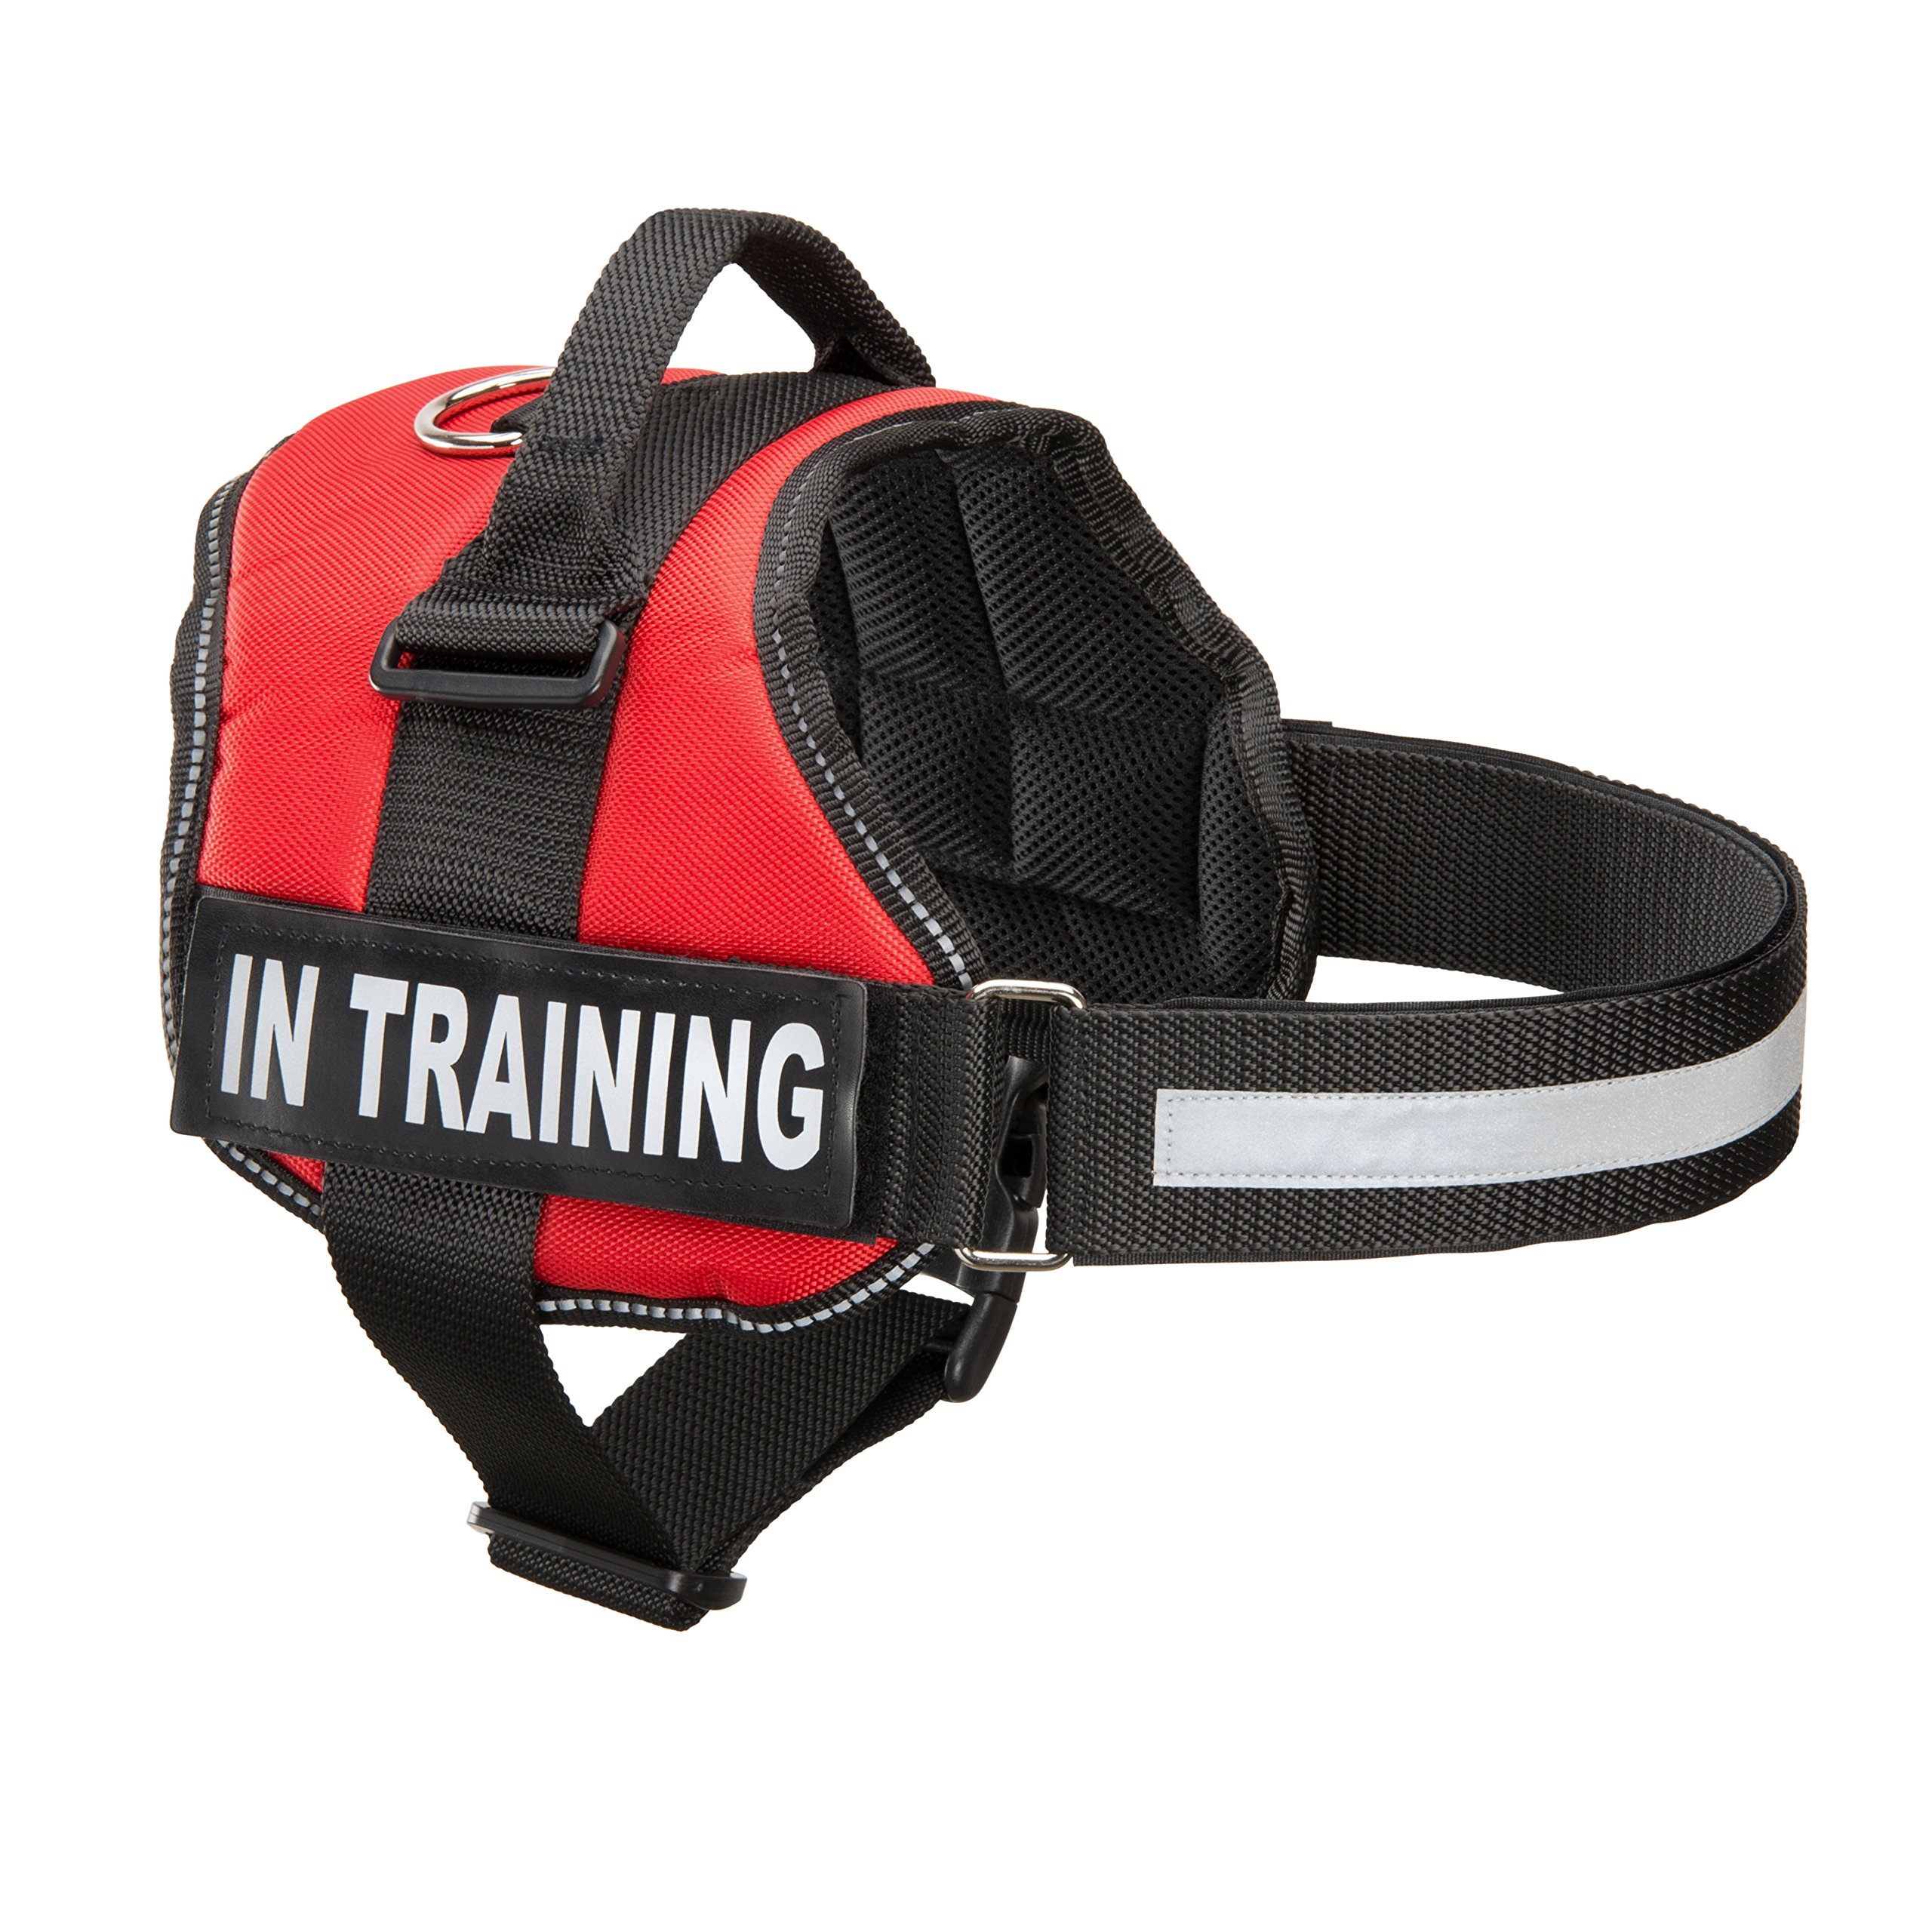 Industrial Puppy Service Dog In Training Vest With Reflective Strap & Removable Patches | Heavy Duty Nylon Straps and Handle for Dogs | 7 Sizes, Many Patch Options, Service Dog Vest Harness From Indus